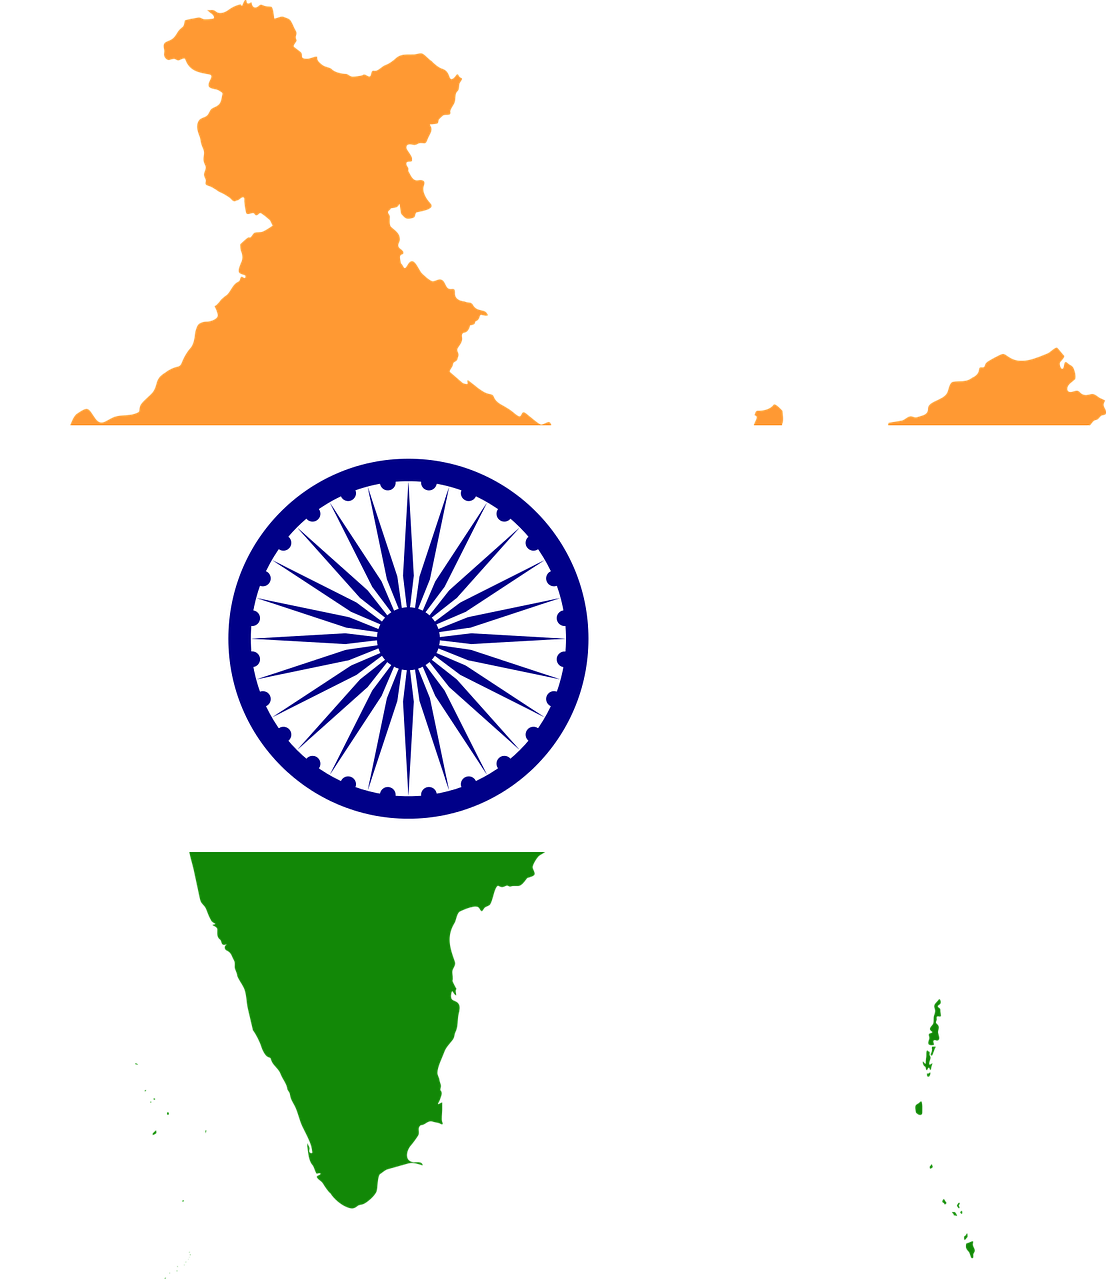 India military force in the world